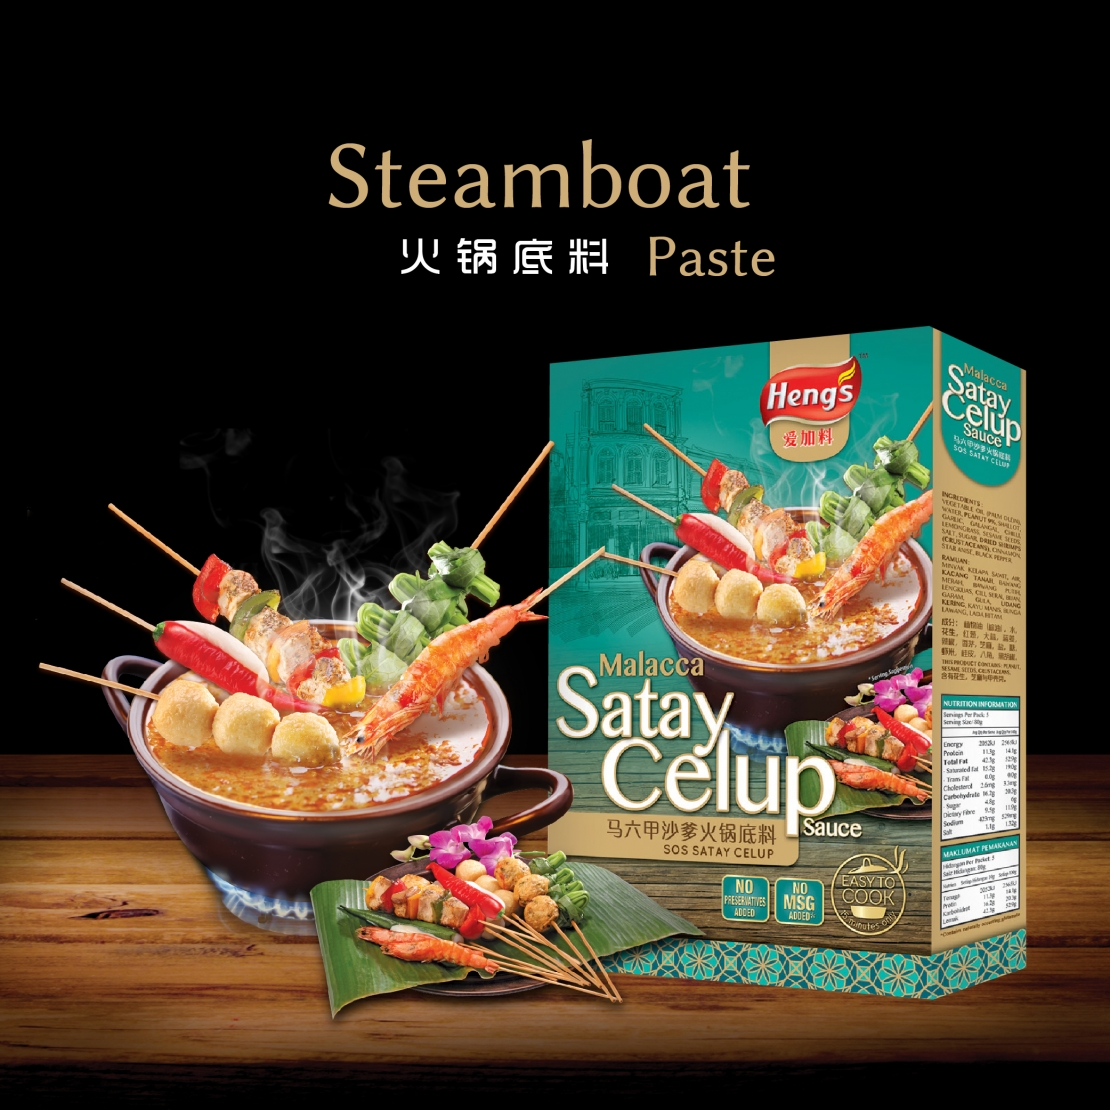 Steamboat Paste